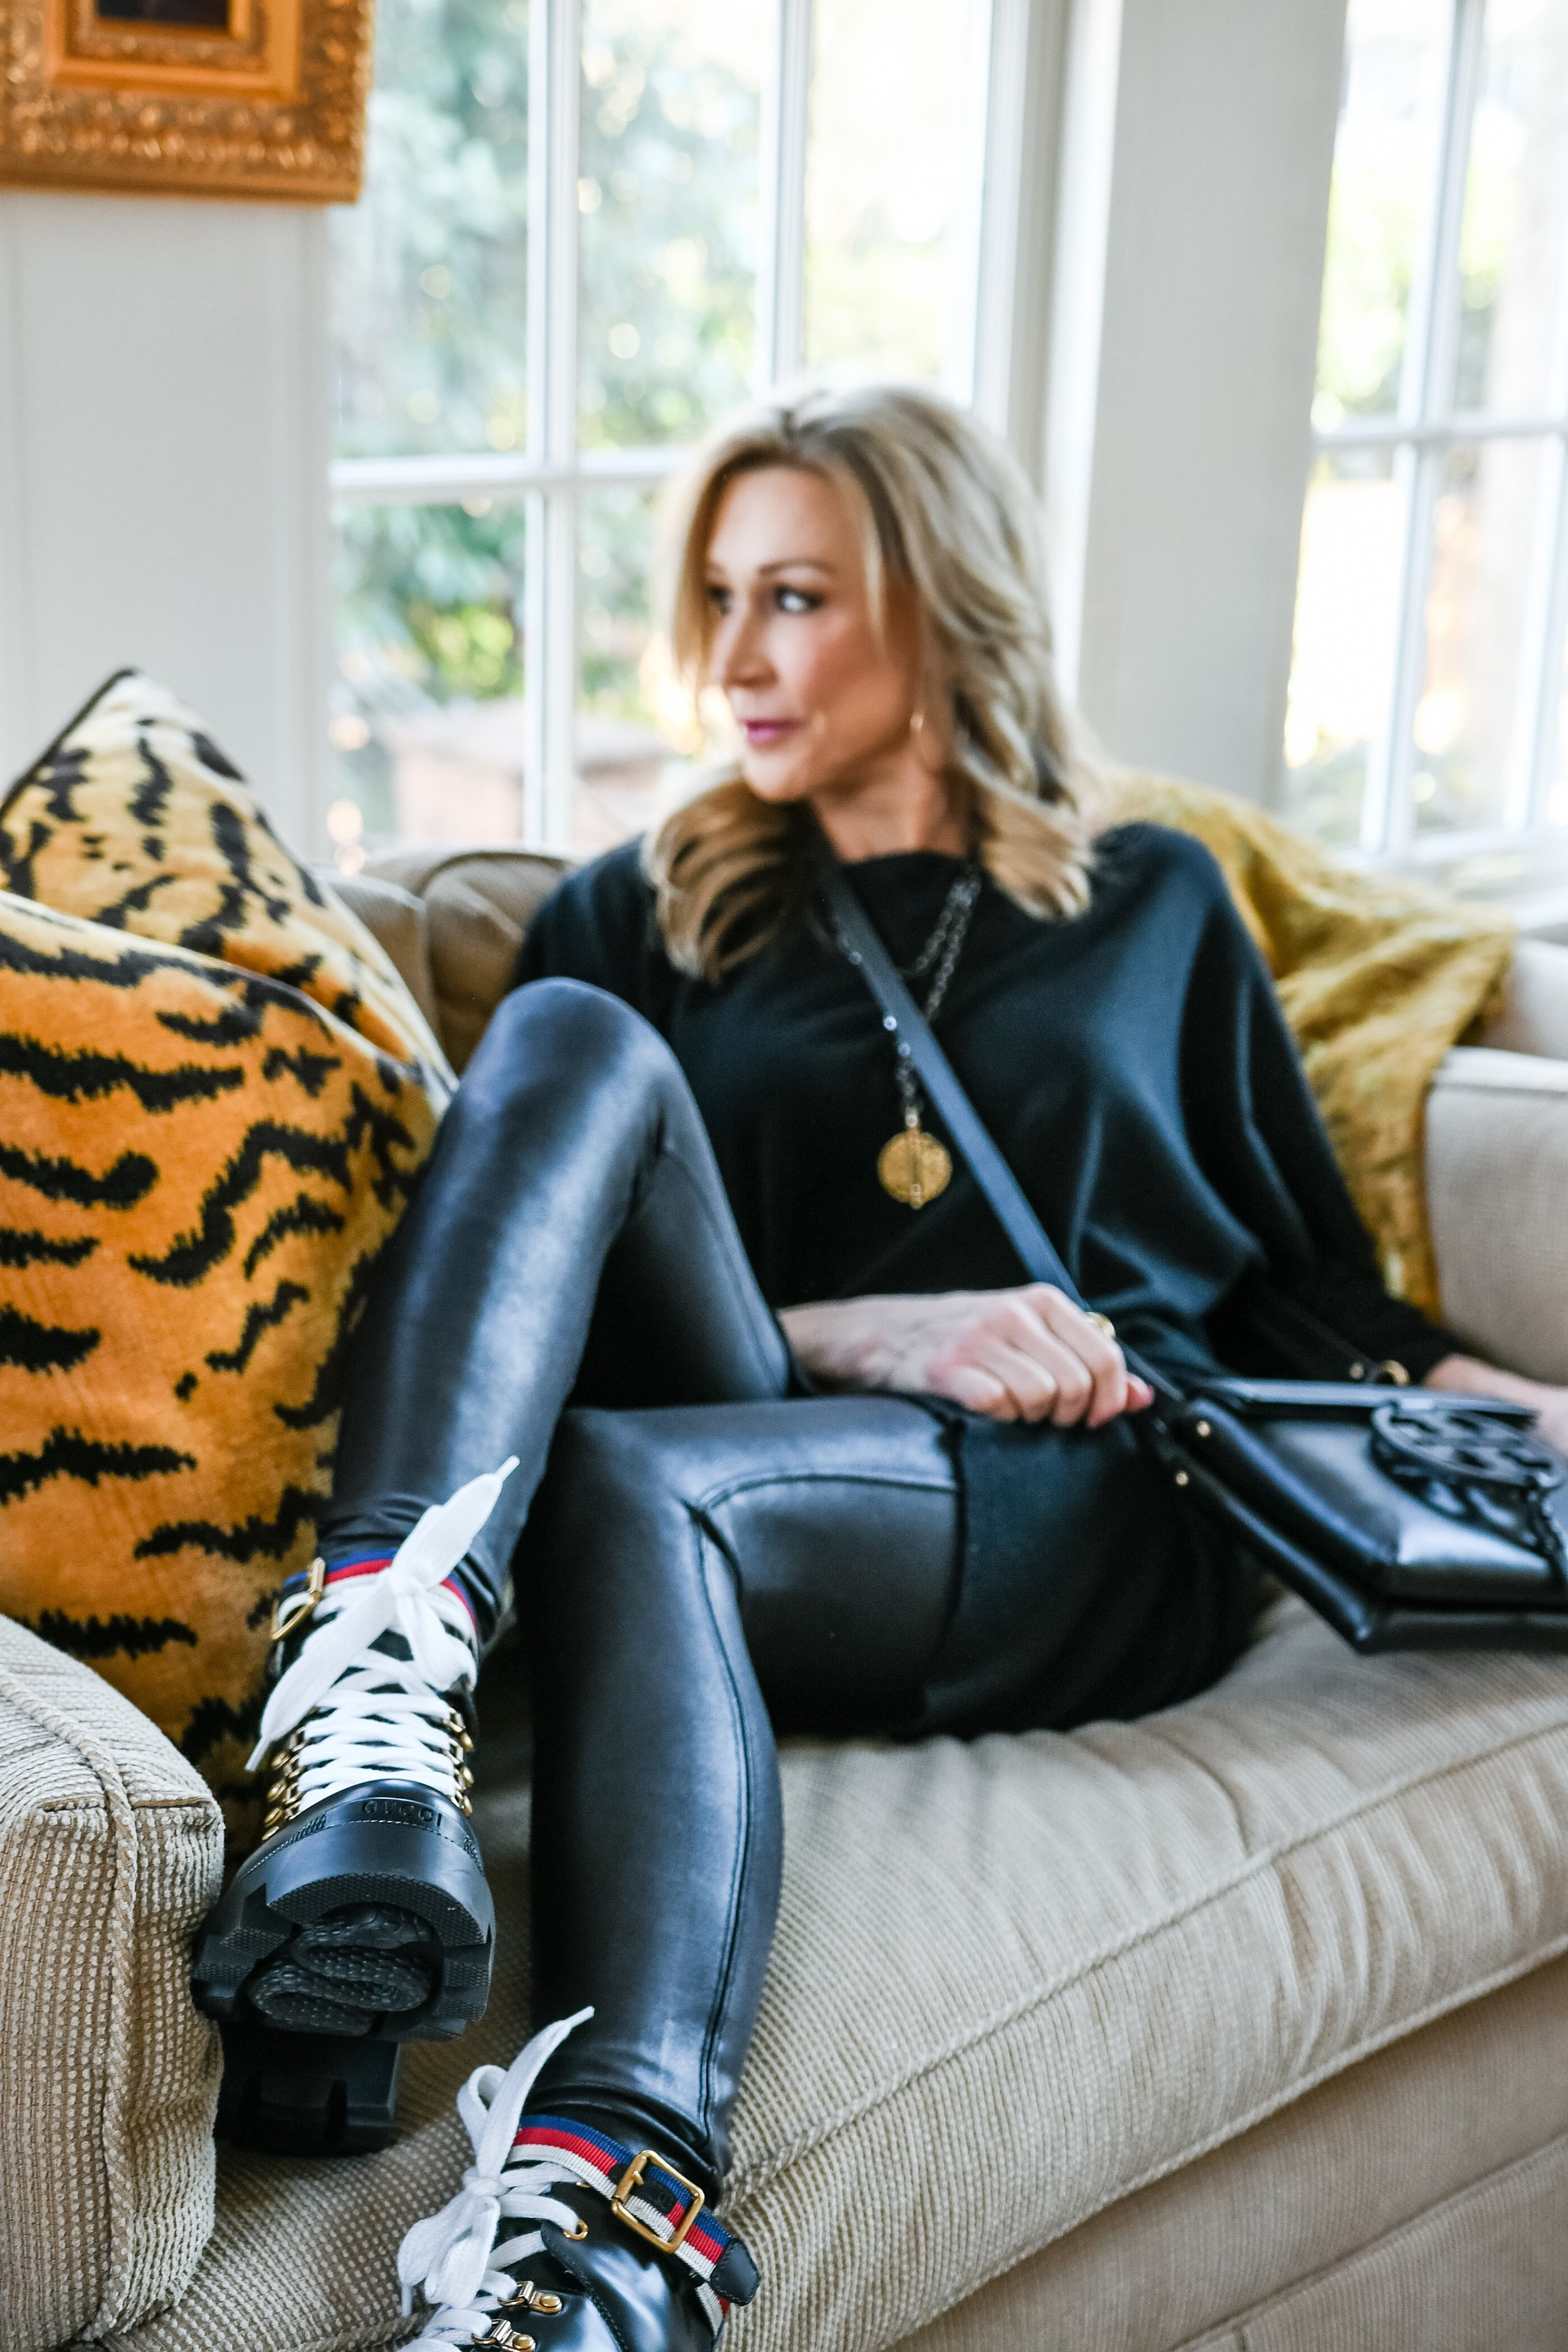 Spanx leggings and sweater dress with Gucci combat boots